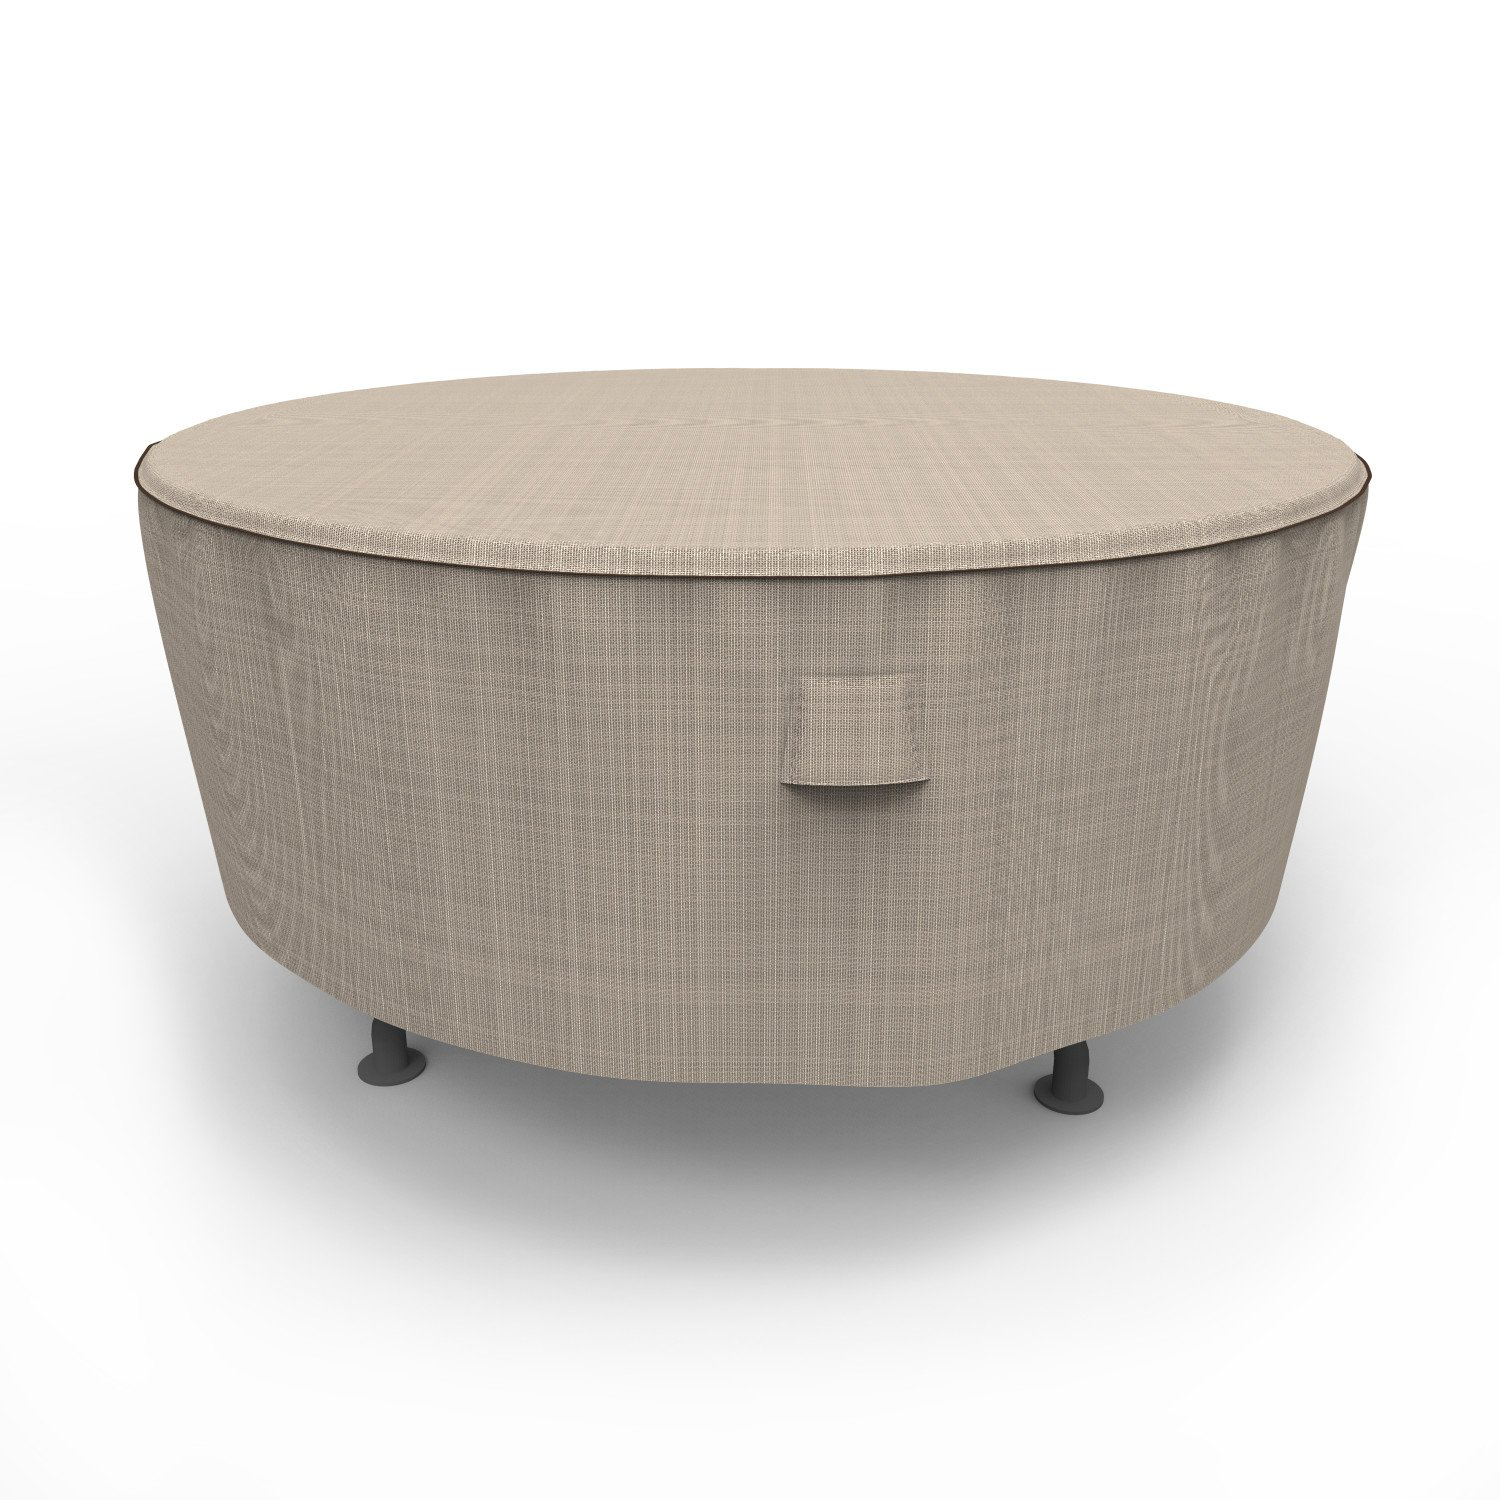 Budge P5A23PM1 English Garden Round Patio Table Cover, Large, Two-Tone Tan